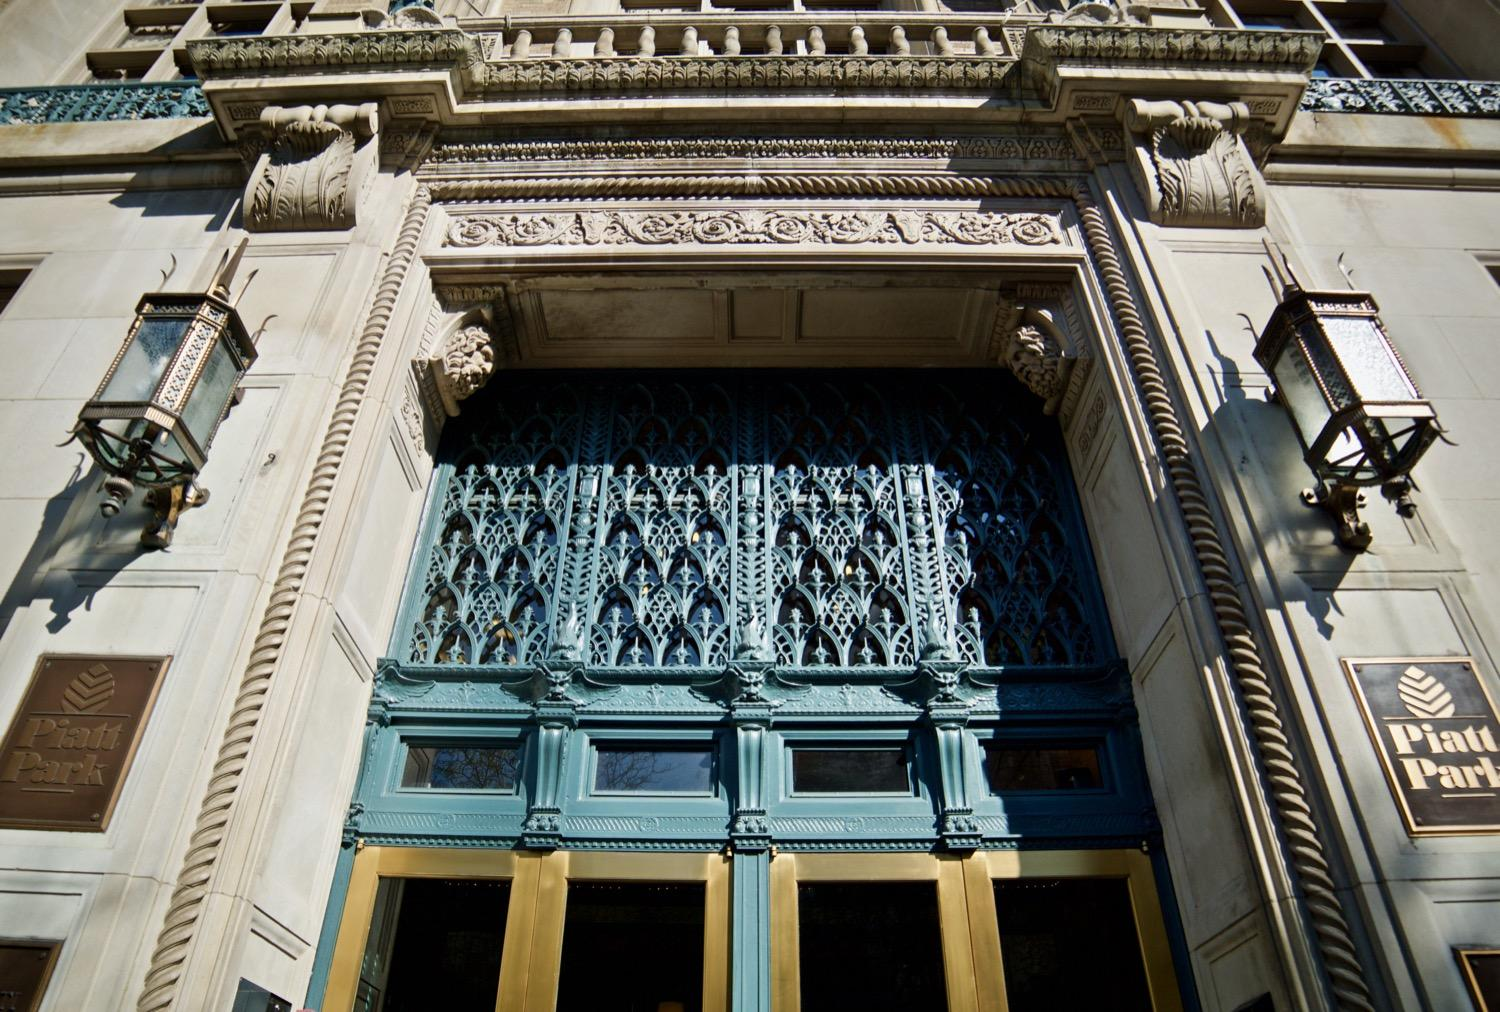 Built In 1923 By Prominent Cincinnati Architecture Firm Garber And  Woodward, The Cincinnati Club Is